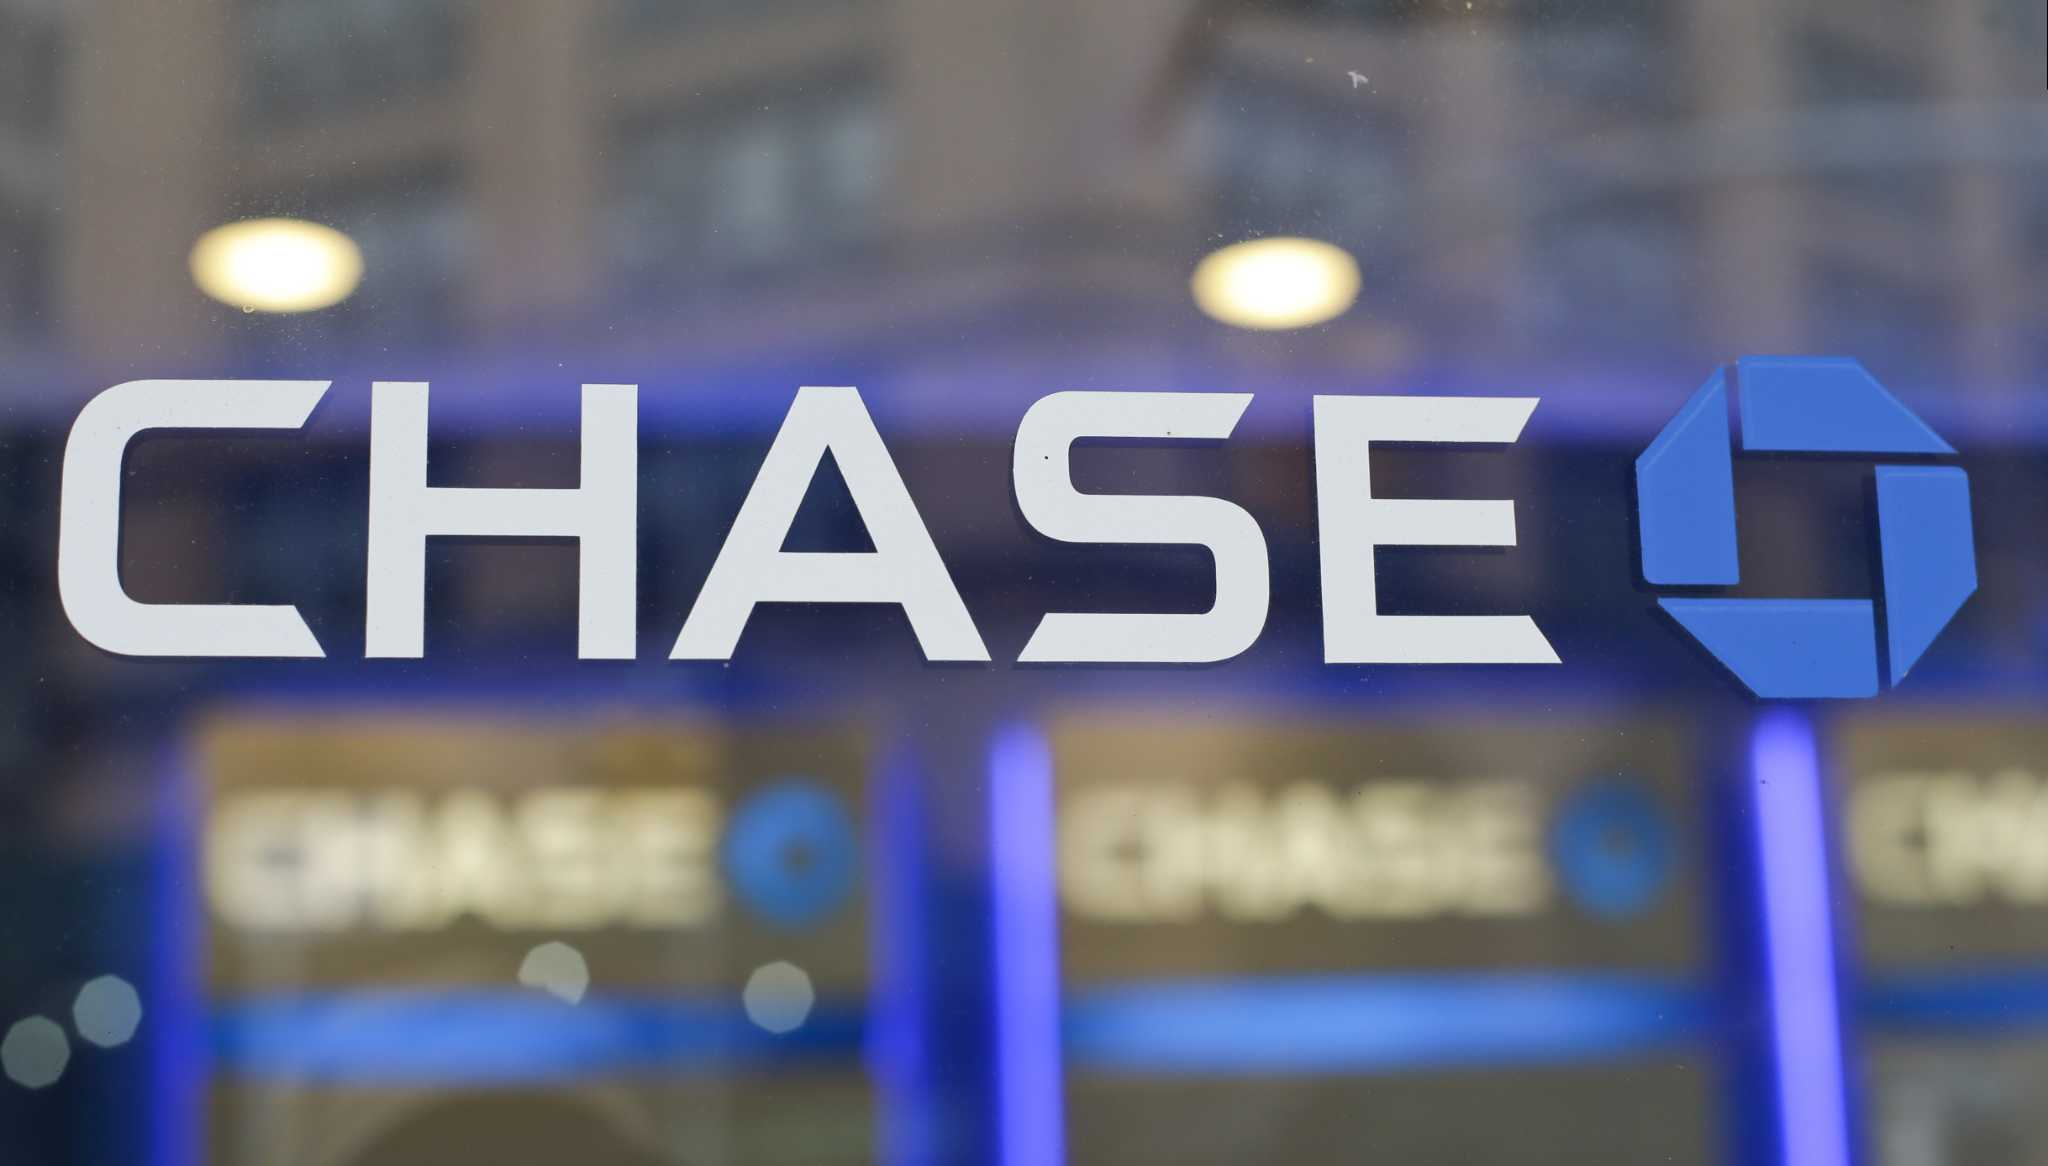 Chase debuts guarantee for quick mortgage closings